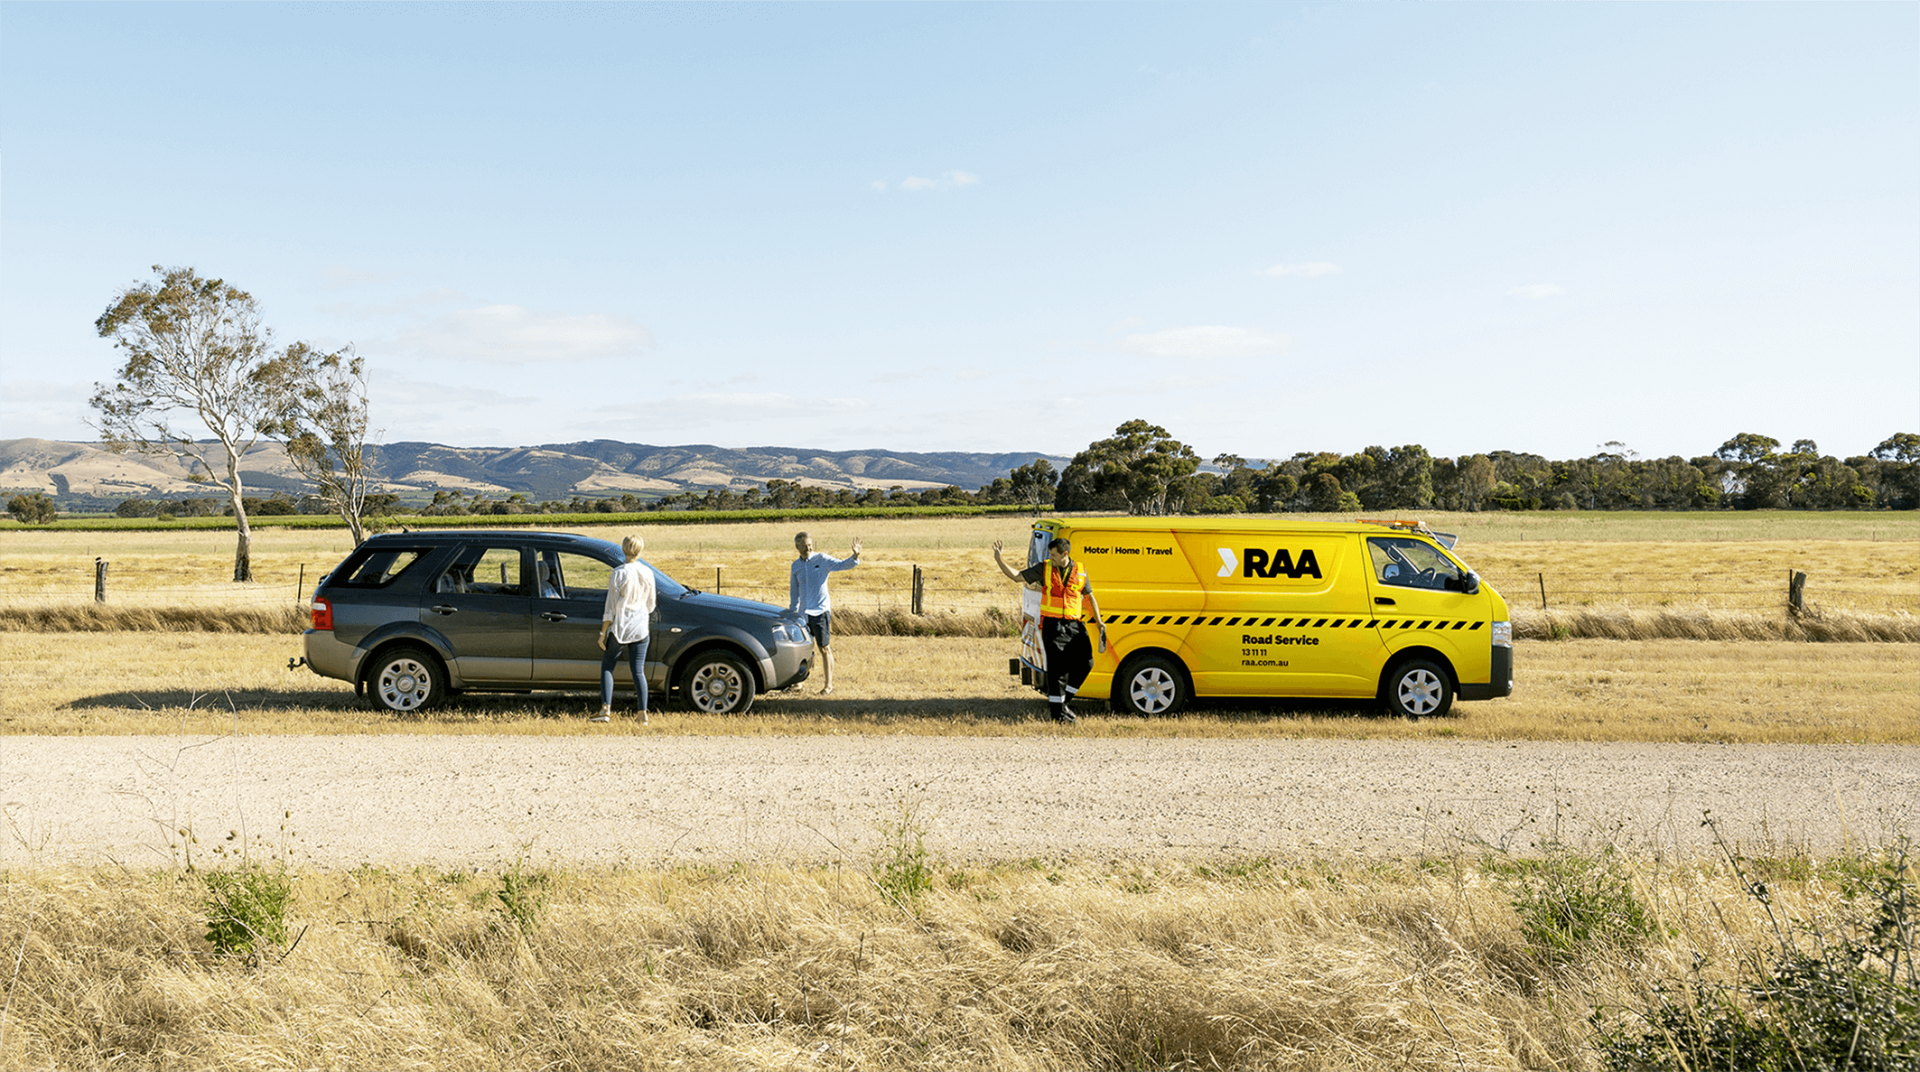 An image of the RAA Road Service van helping a stranded couple in the South Australian countryside